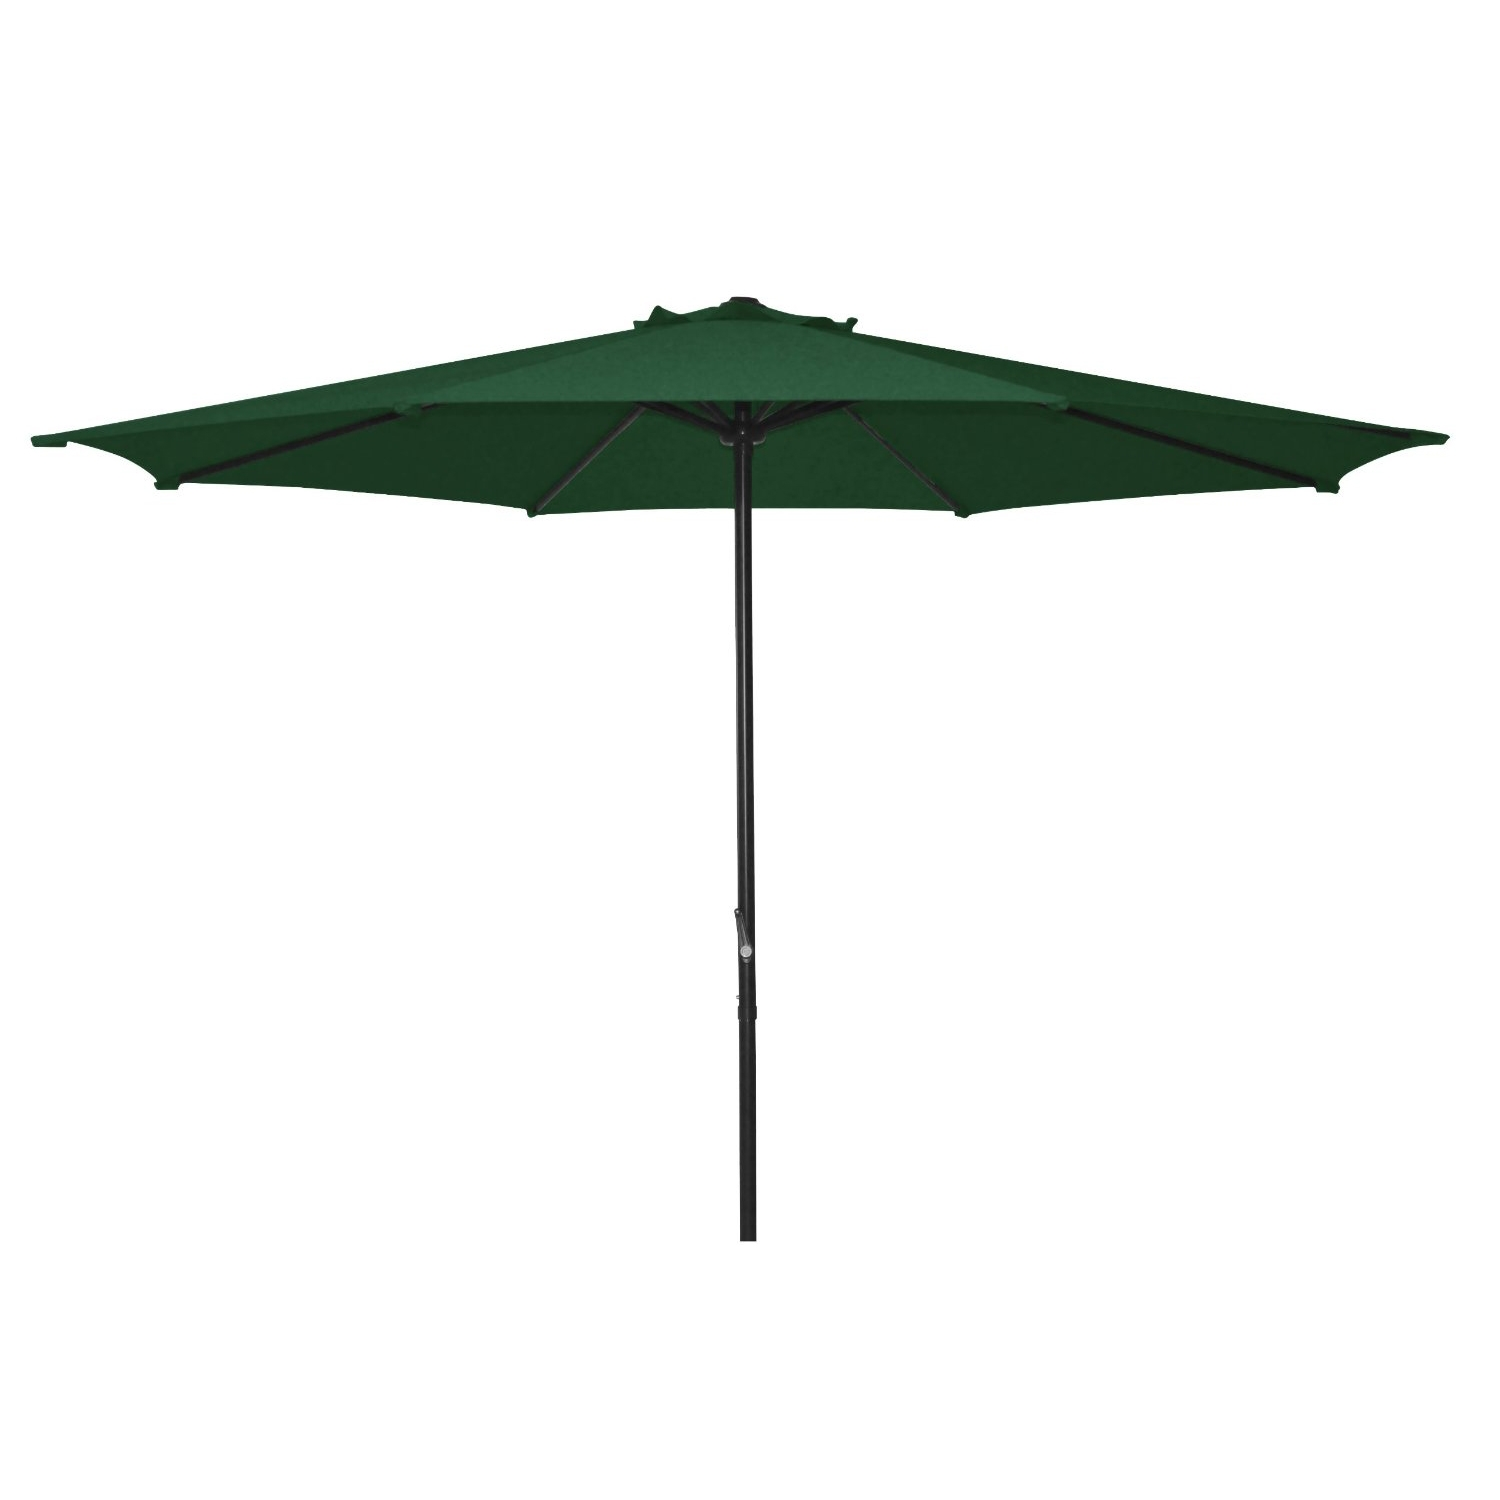 9 Foot Patio Umbrella with Dark Green Polyester Fabric Shade, ADGMU45019F :  The 9 ft Polyester Shade Market Umbrella Patio Umbrella with Crank Open System is perfect for blocking the sun and looks great in any outdoor patio, garden, or deck.  Dark Green color polyester shade.  Sturdy powder coated frame and metal pole. Easily create shade in your patio or deck area.  Umbrella Base sold separately.